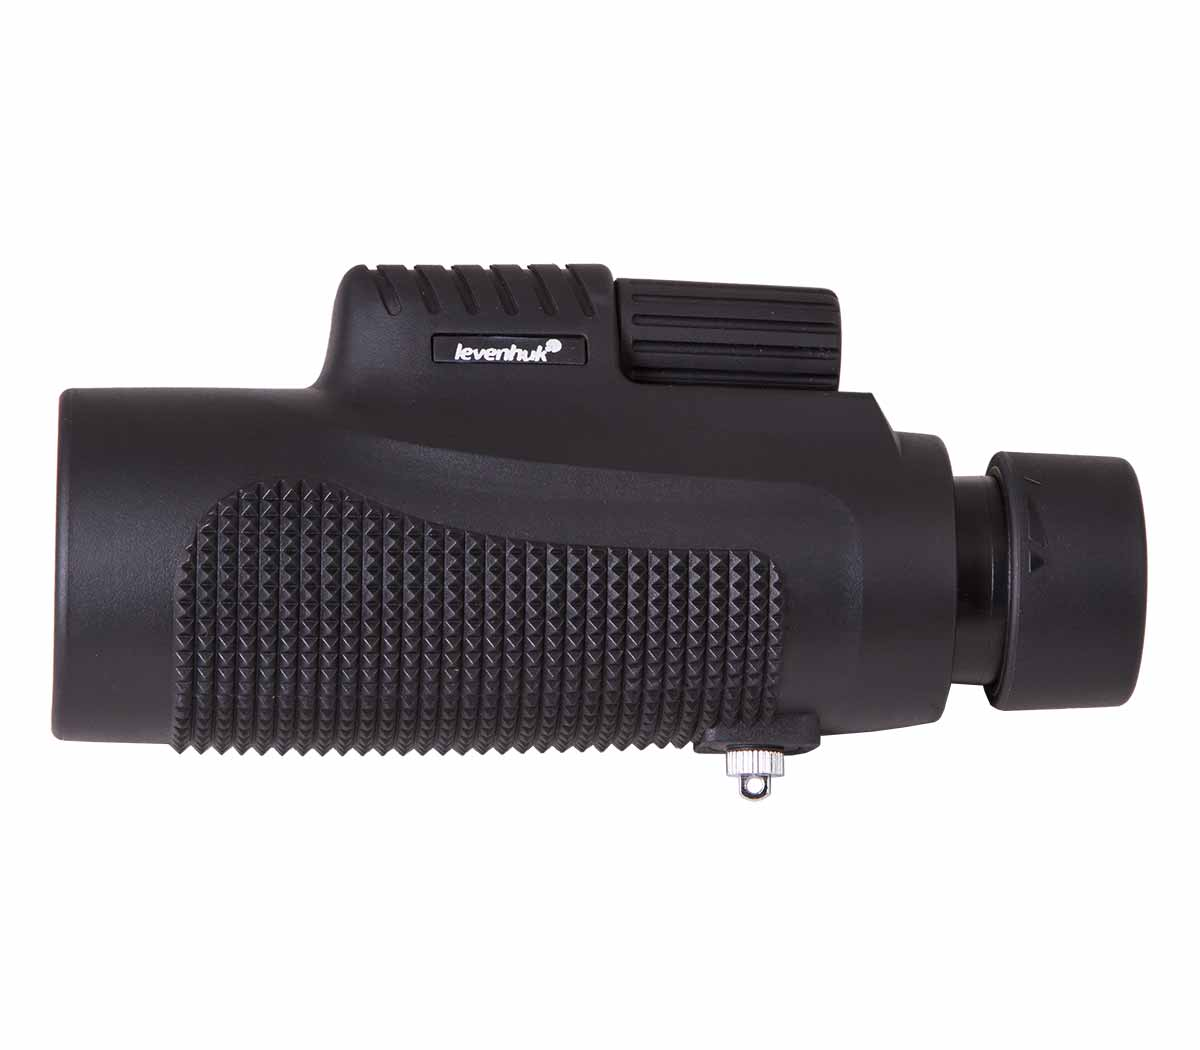 Monocular Levenhuk Wise 10x42 lateral